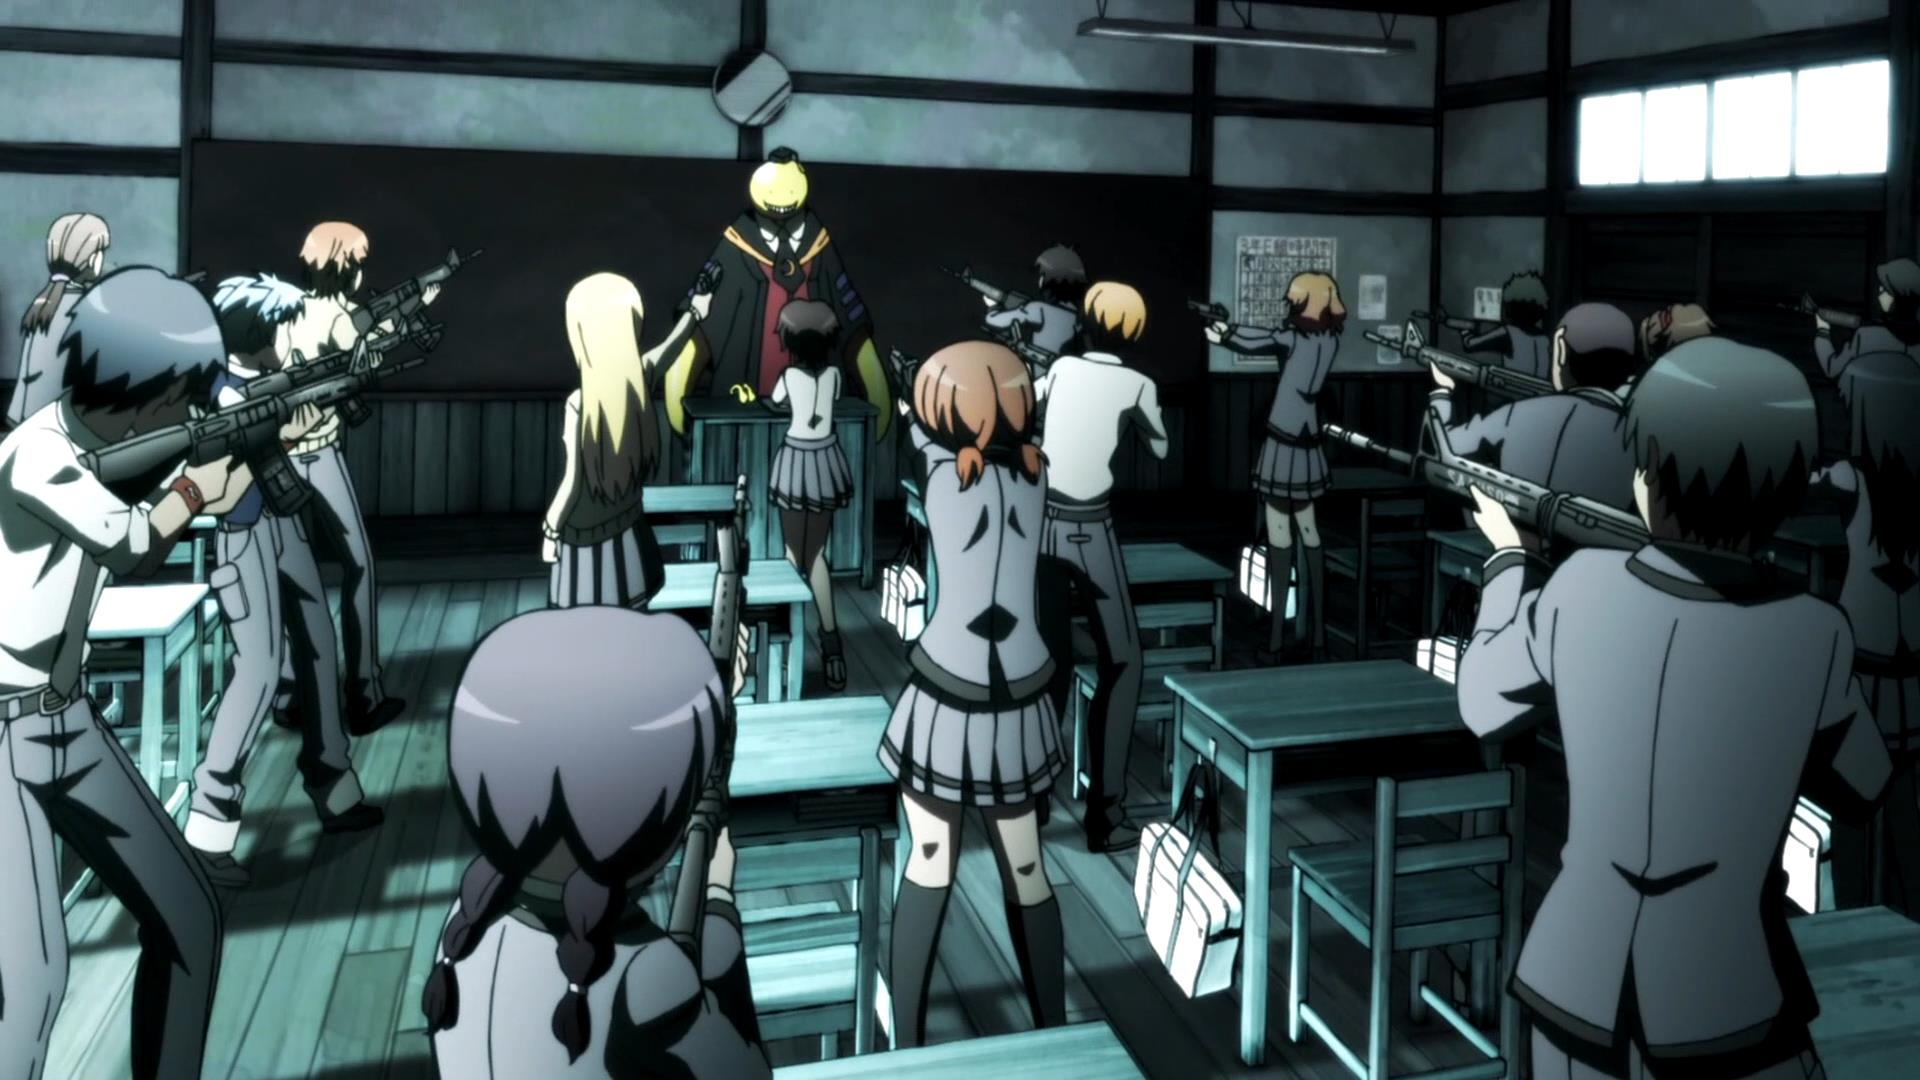 assassination-classroom-part-one-screenshot-02.jpg